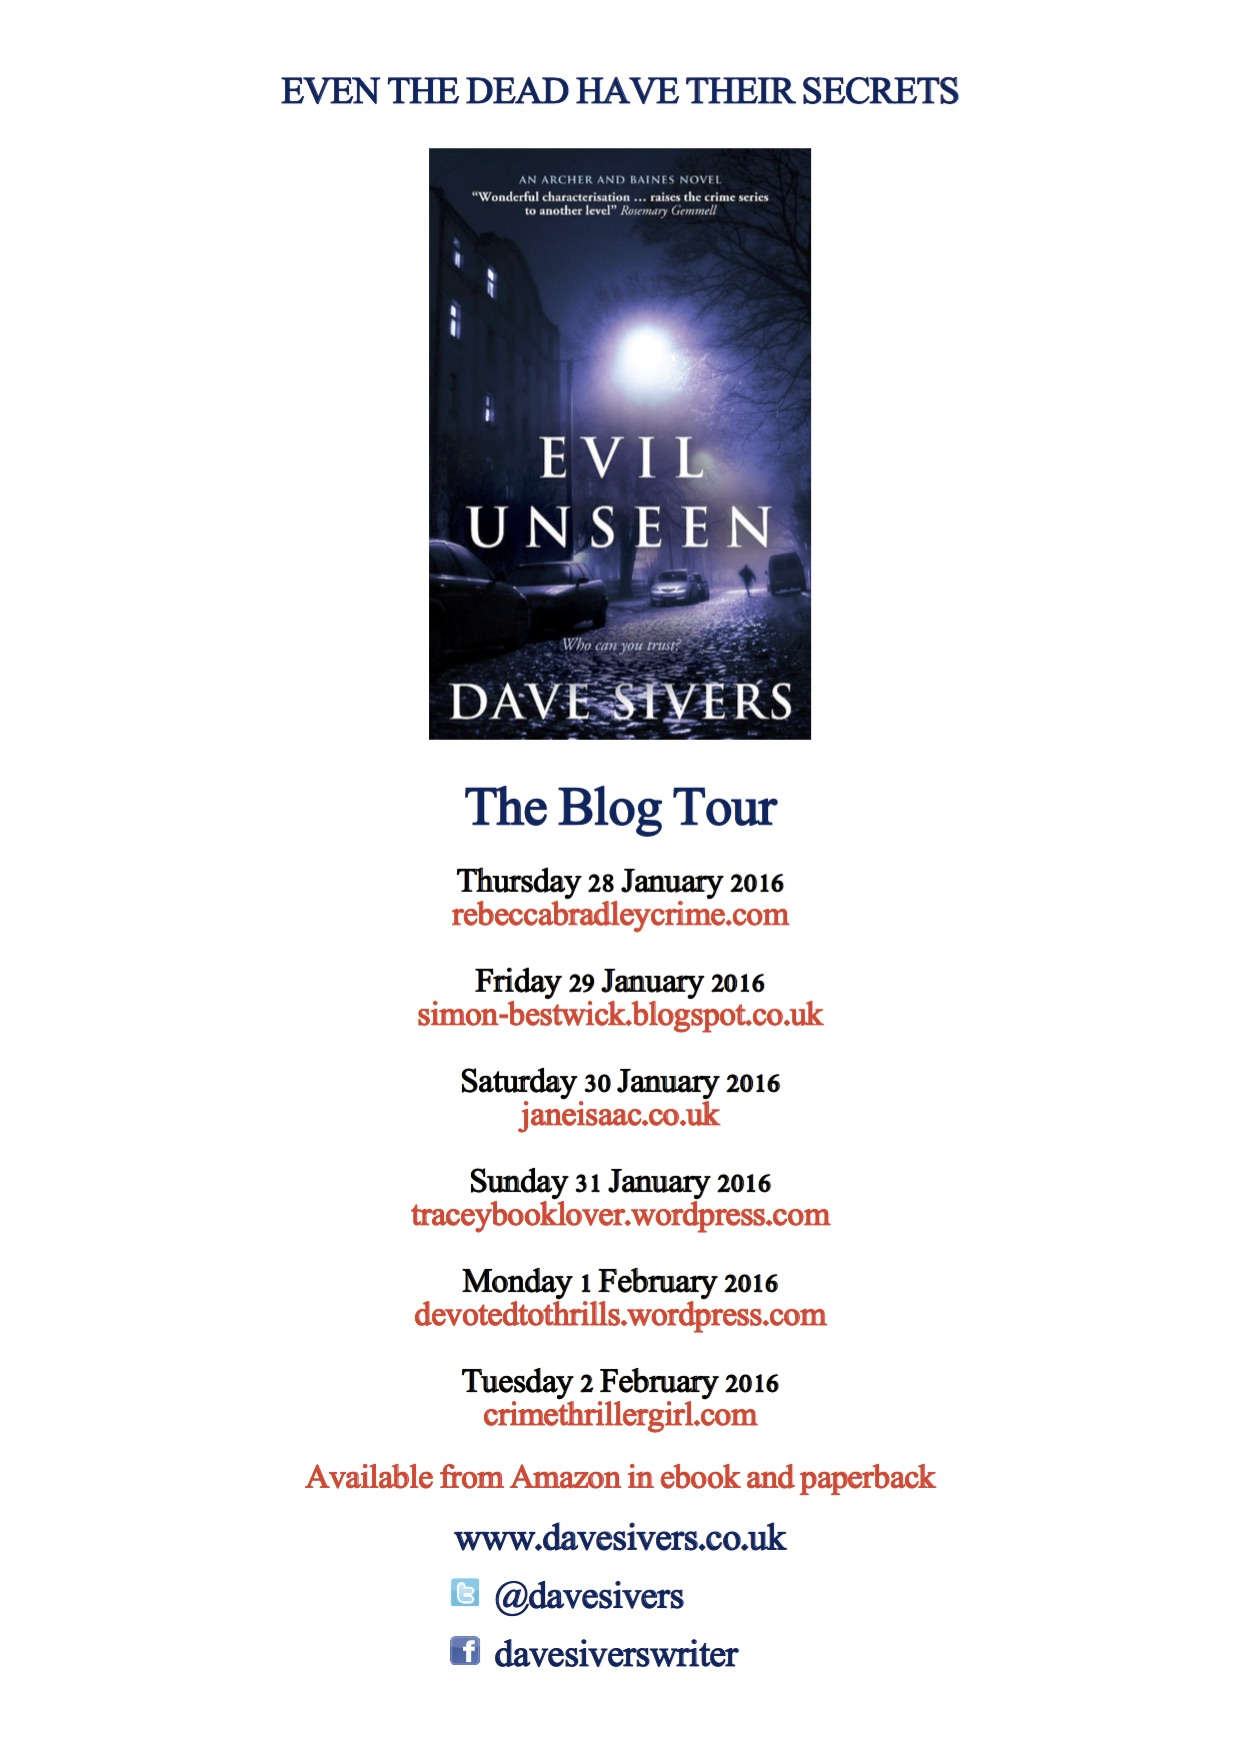 Evil Unseen by Dave Sivers – Blog Tour